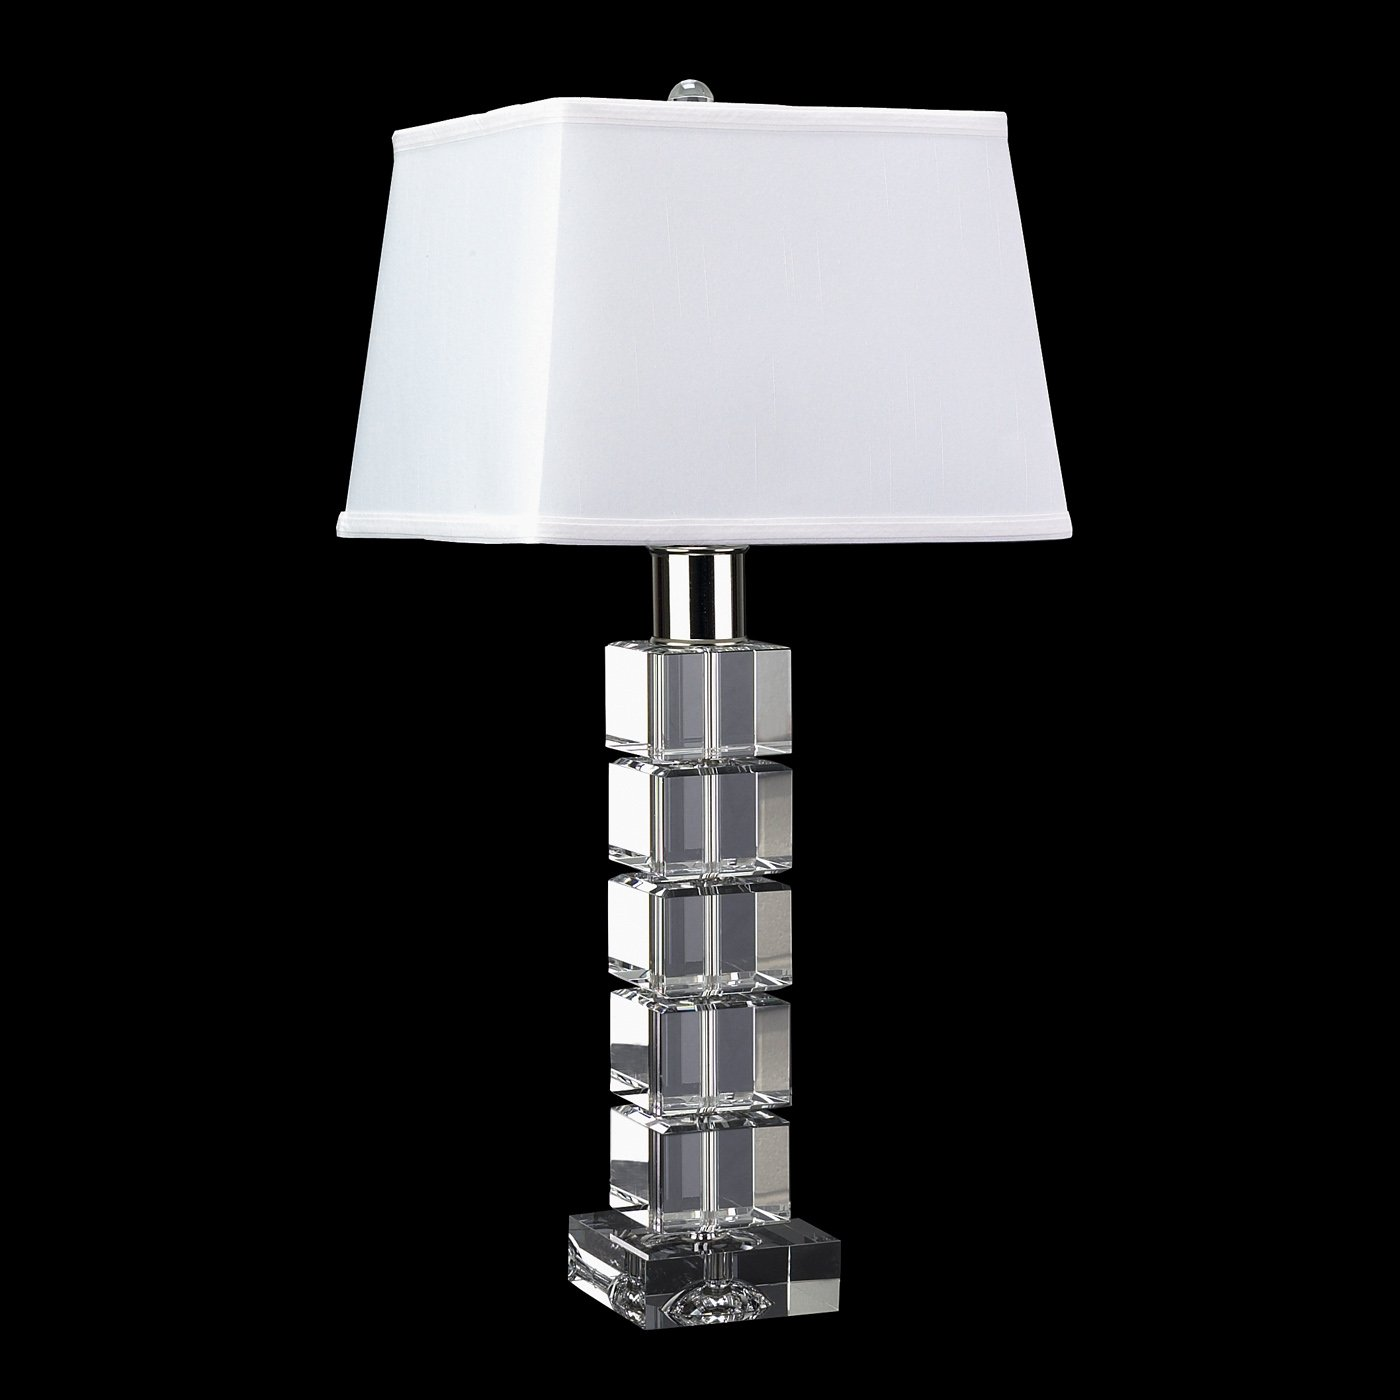 broyhill table lamps photo - 1